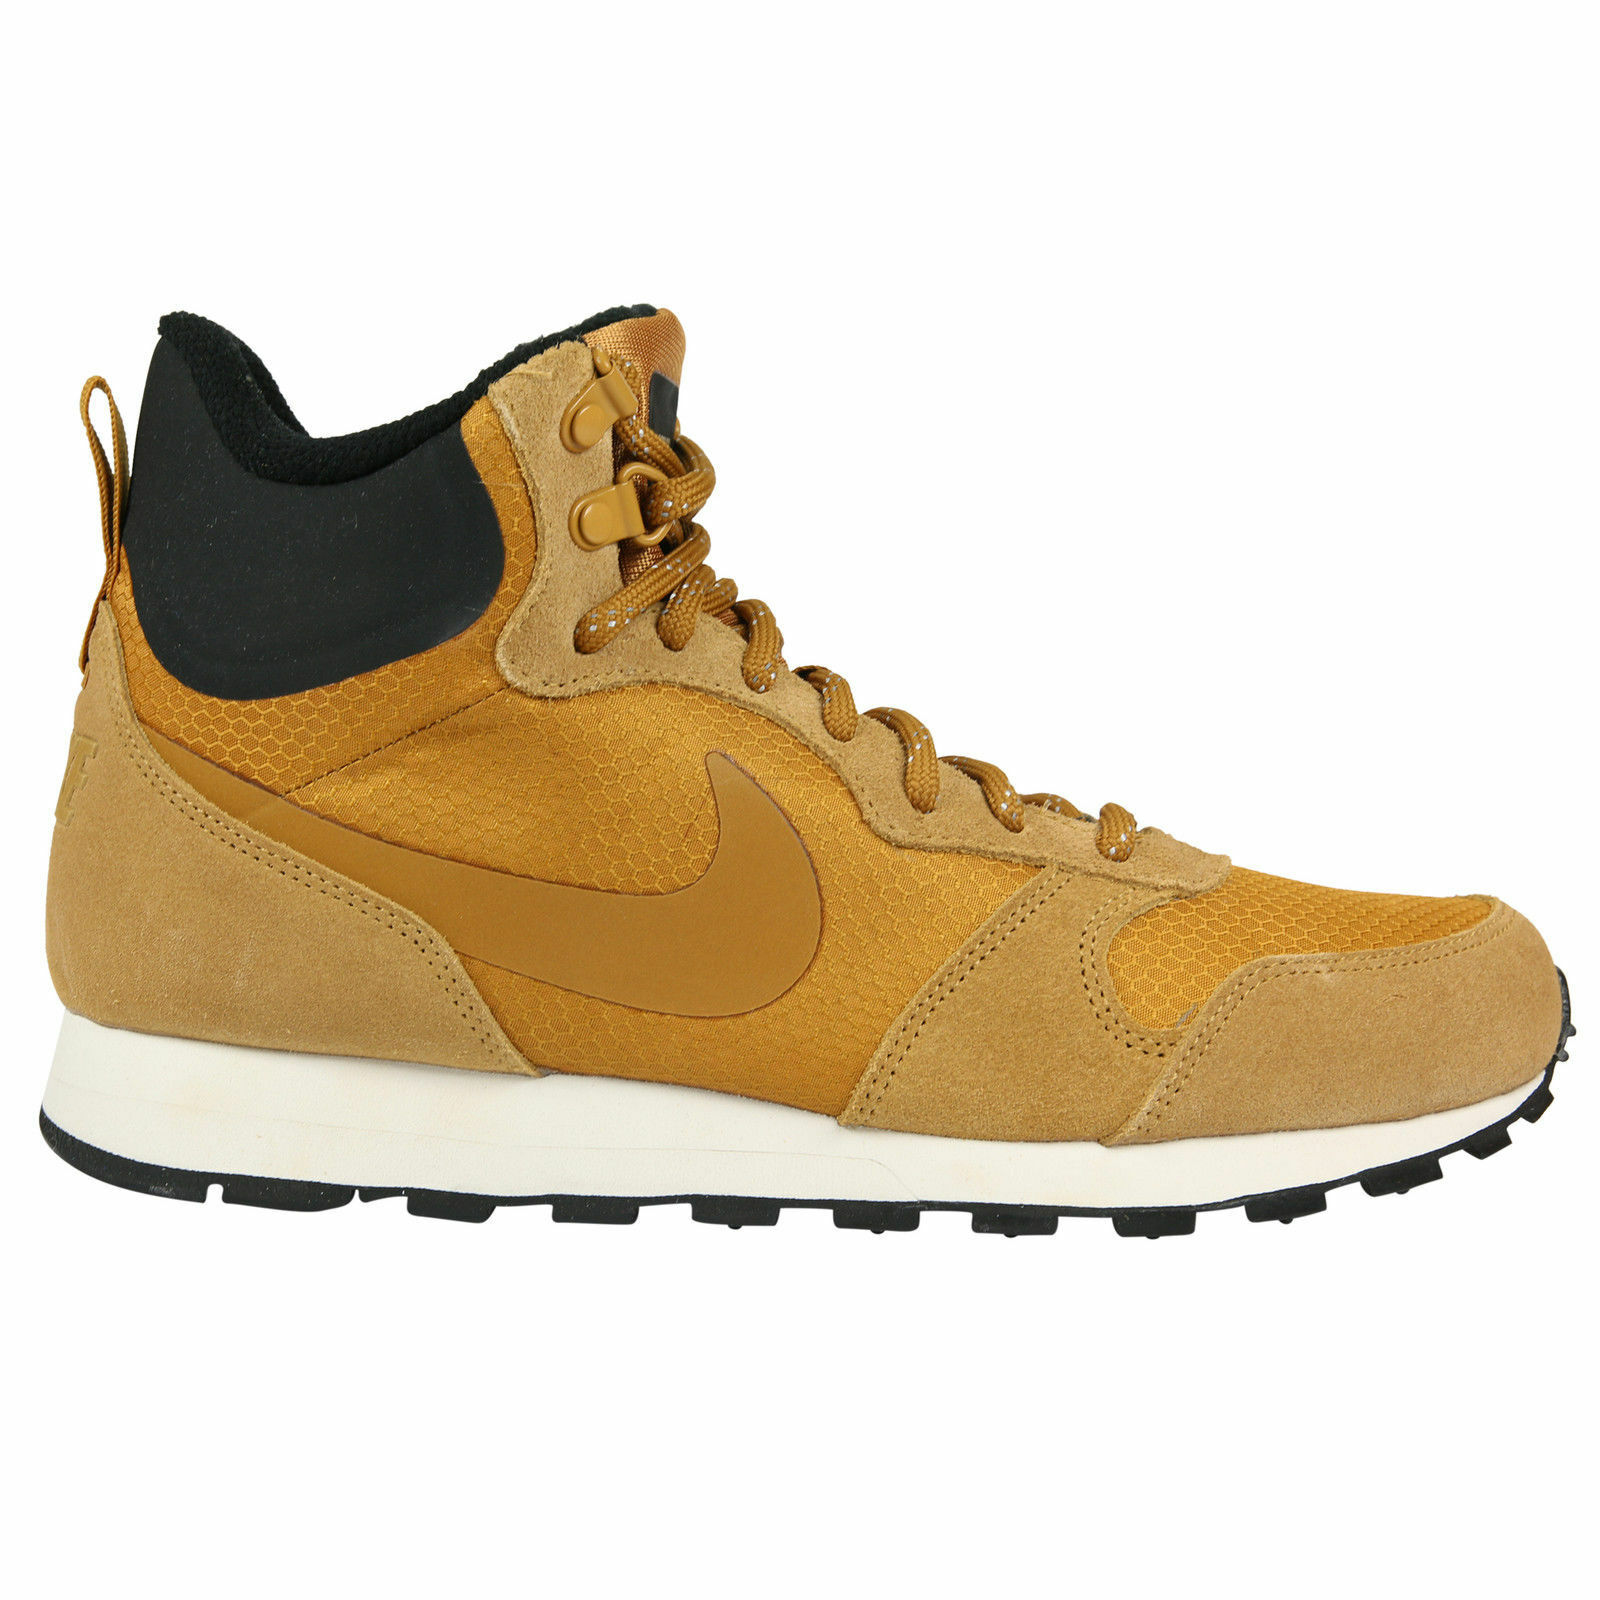 Nike MD Runner 2 Mid Premium Sneaker Shoe Wheat 844864-700 Mens Sz 9 - 11